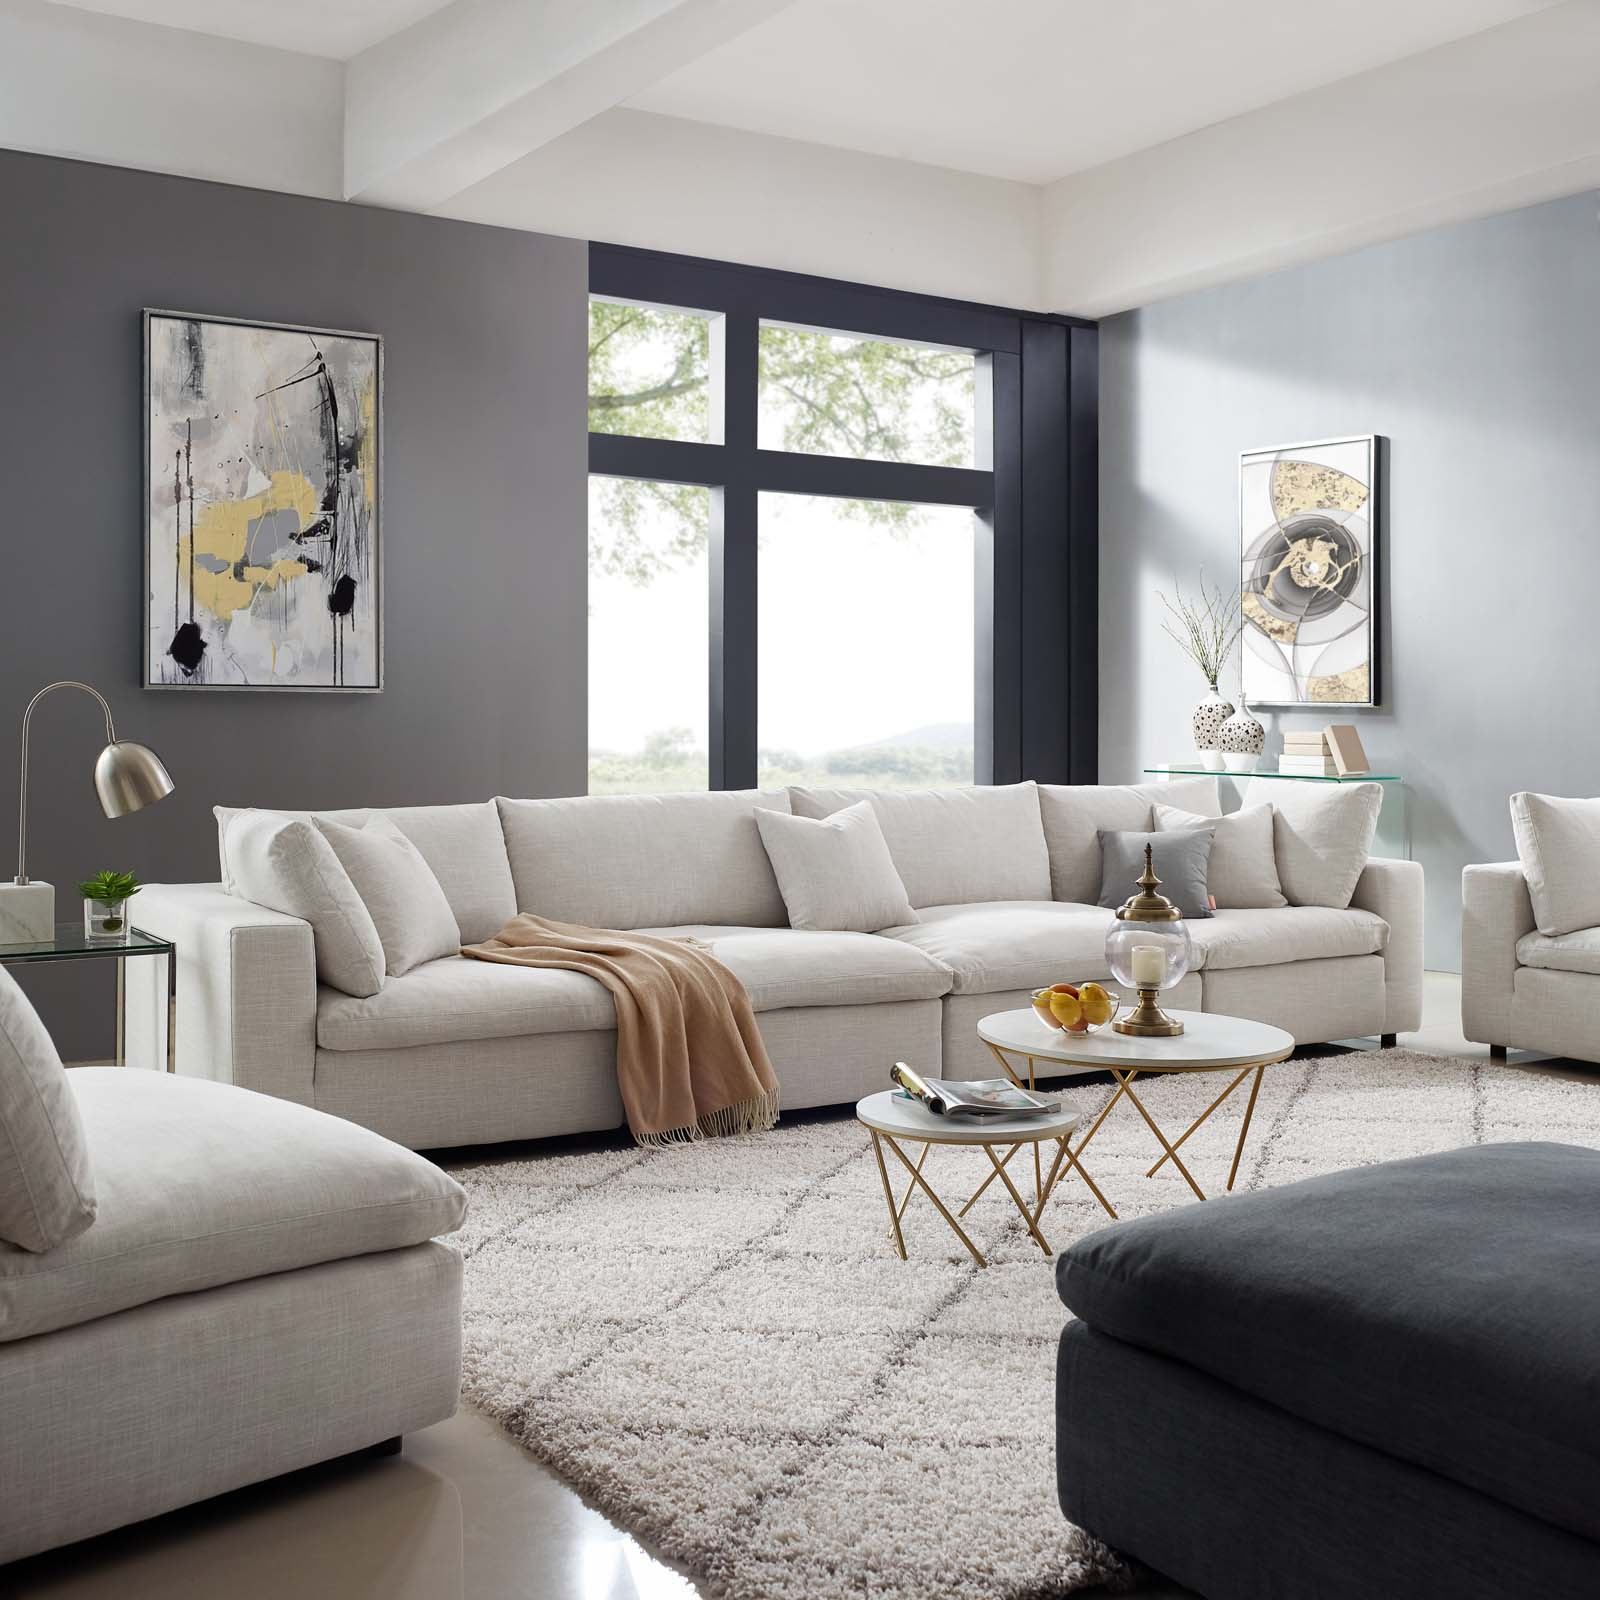 Commix Down Filled Overstuffed 4 Piece Sectional Sofa Set Within Down Filled Sectional Sofas (View 7 of 15)